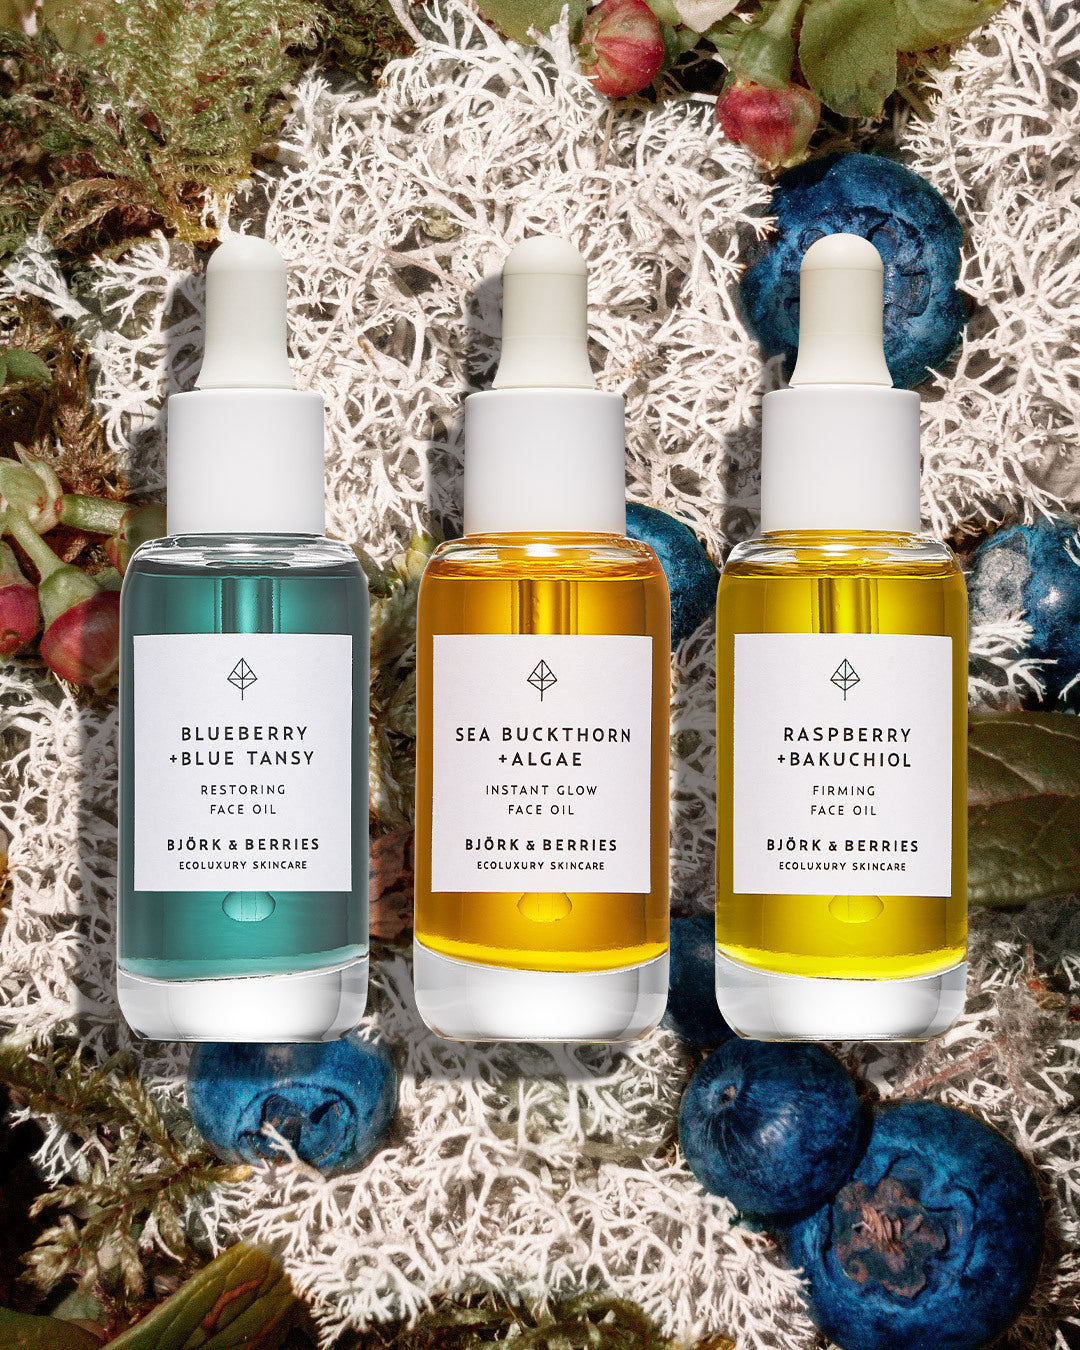 Introducing our face oil trio